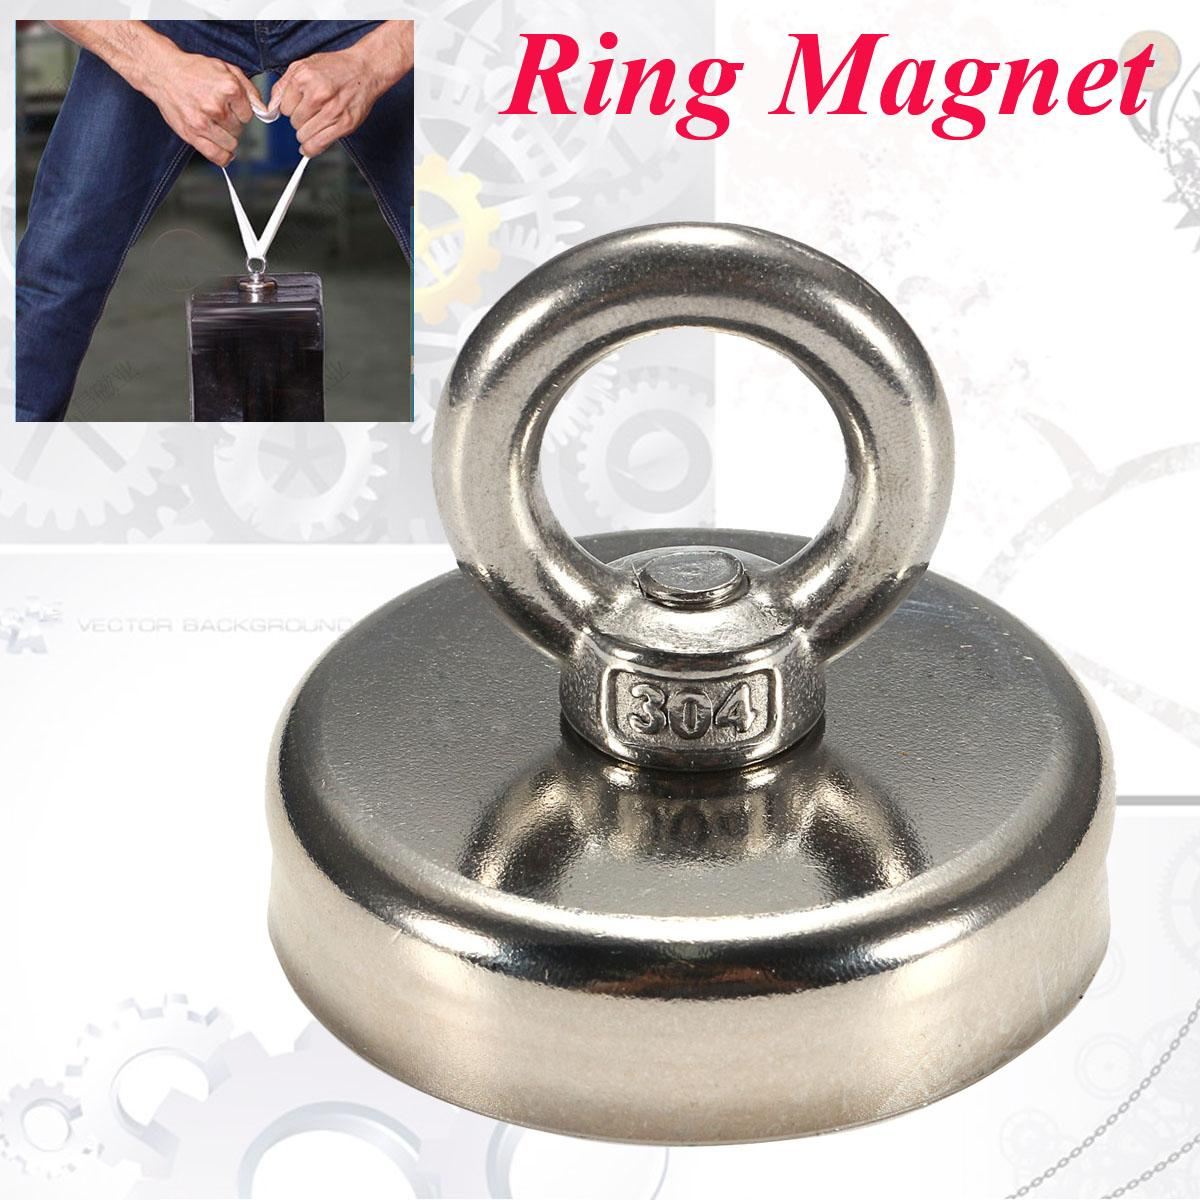 1Pcs 112KG 60mmx50mm Hunting Recovery Salvage Neodymium Detector Eyebolt Ring Magnet Powerful Permanent Magnetic 1piece 164kg magnetic pull force neodymium recovery fishing detecting magnet pot with a eyebolt antenna magnetic mounting base